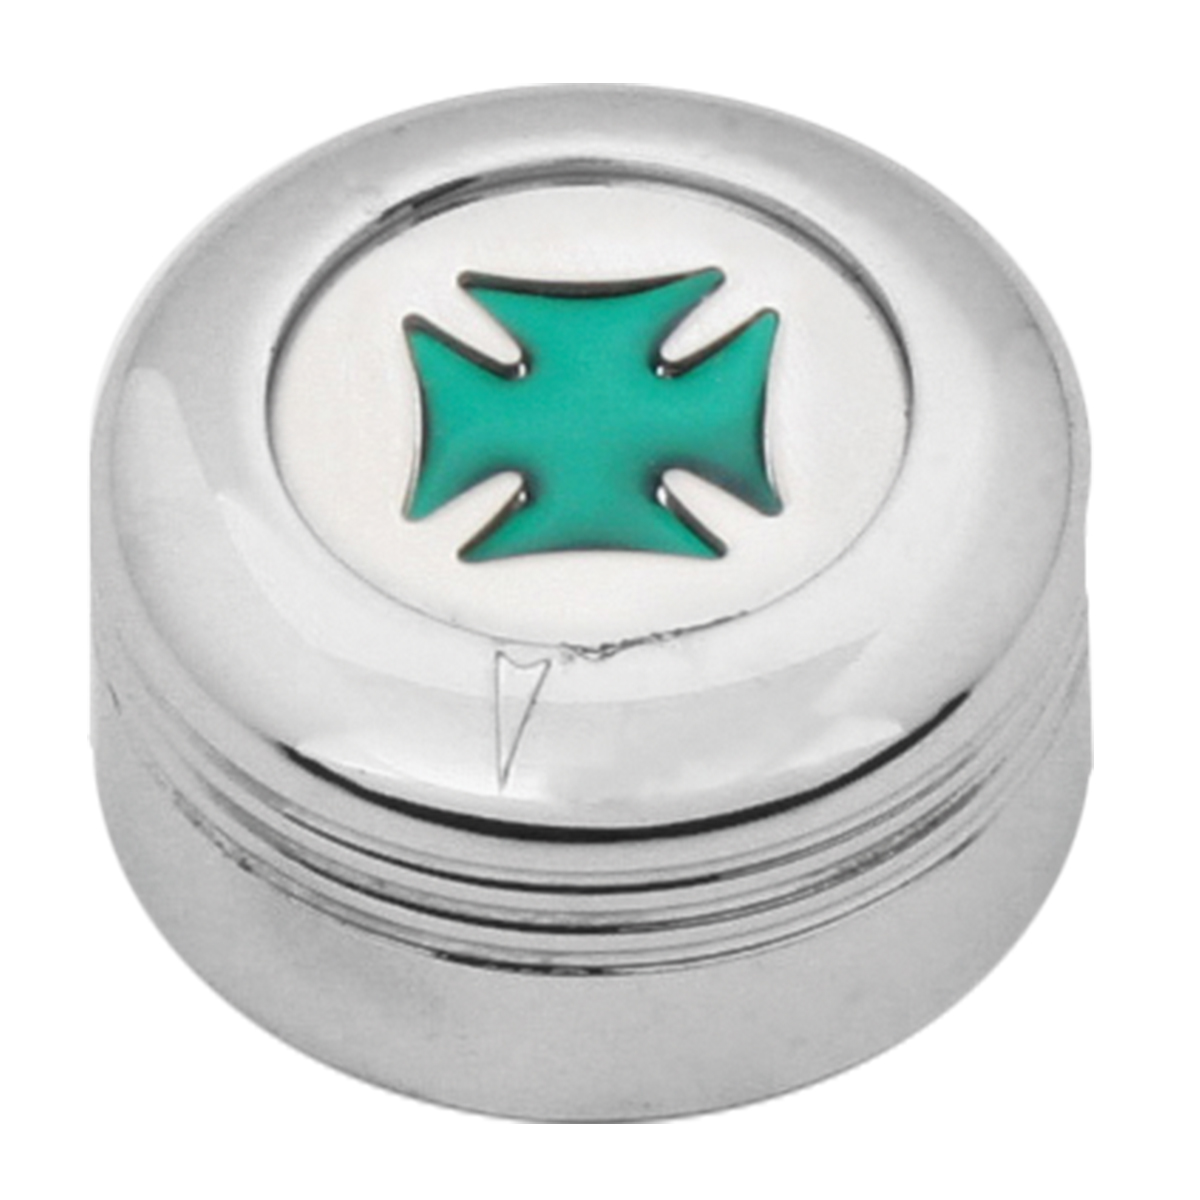 Chrome Plastic A/C Knob w/ Green Iron Cross for Pete